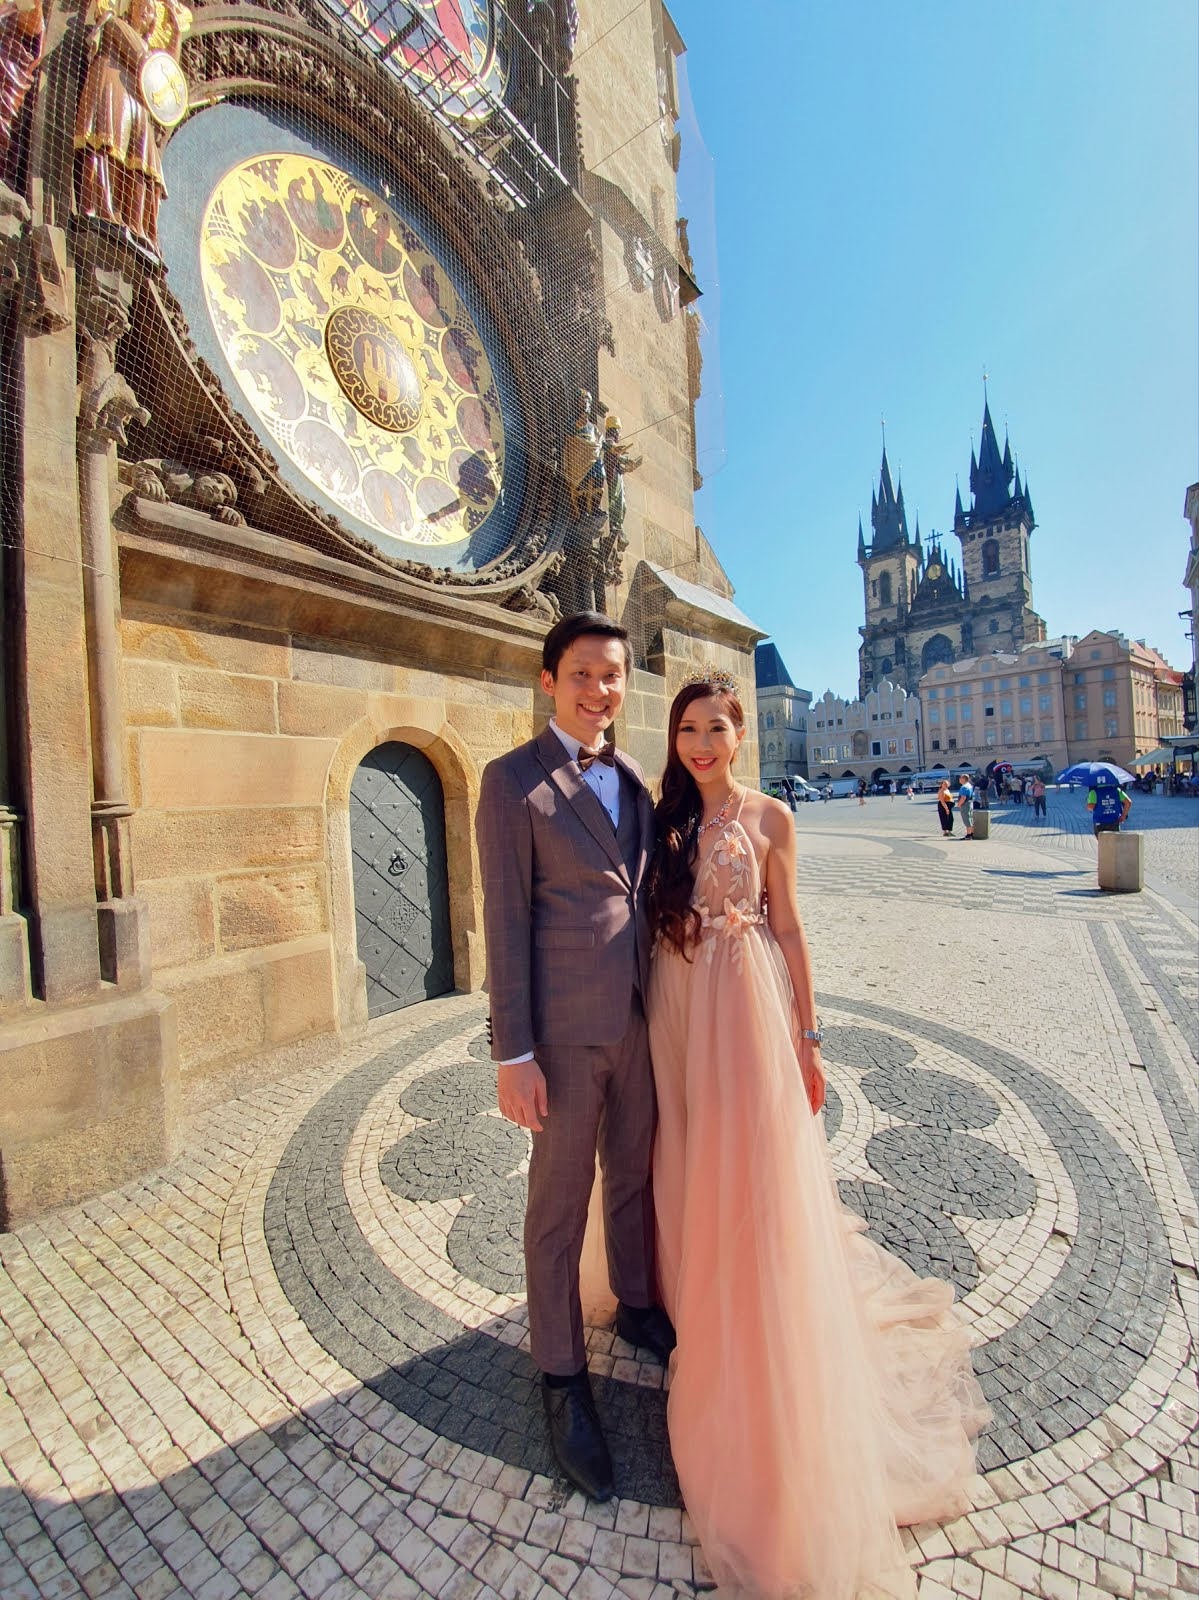 Dr VT & Sara Shantelle Lim's Pre Wedding Photos & Videos taken in PRAGUE CZECH REPUBLIC